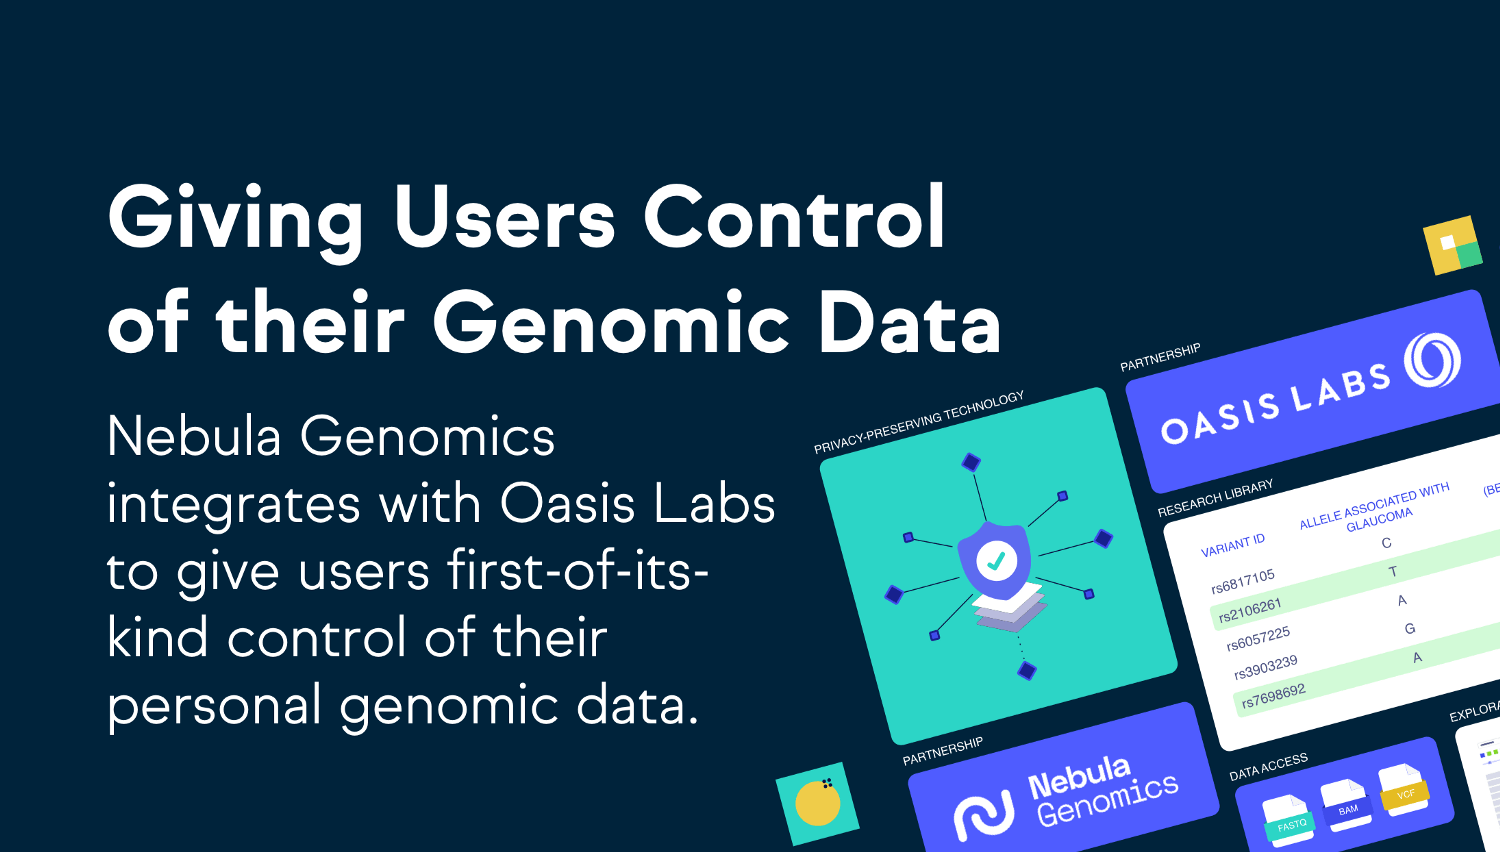 Nebula, Oasis Labs Integrate to Give Users Ownership of Their Personal Genomic Data